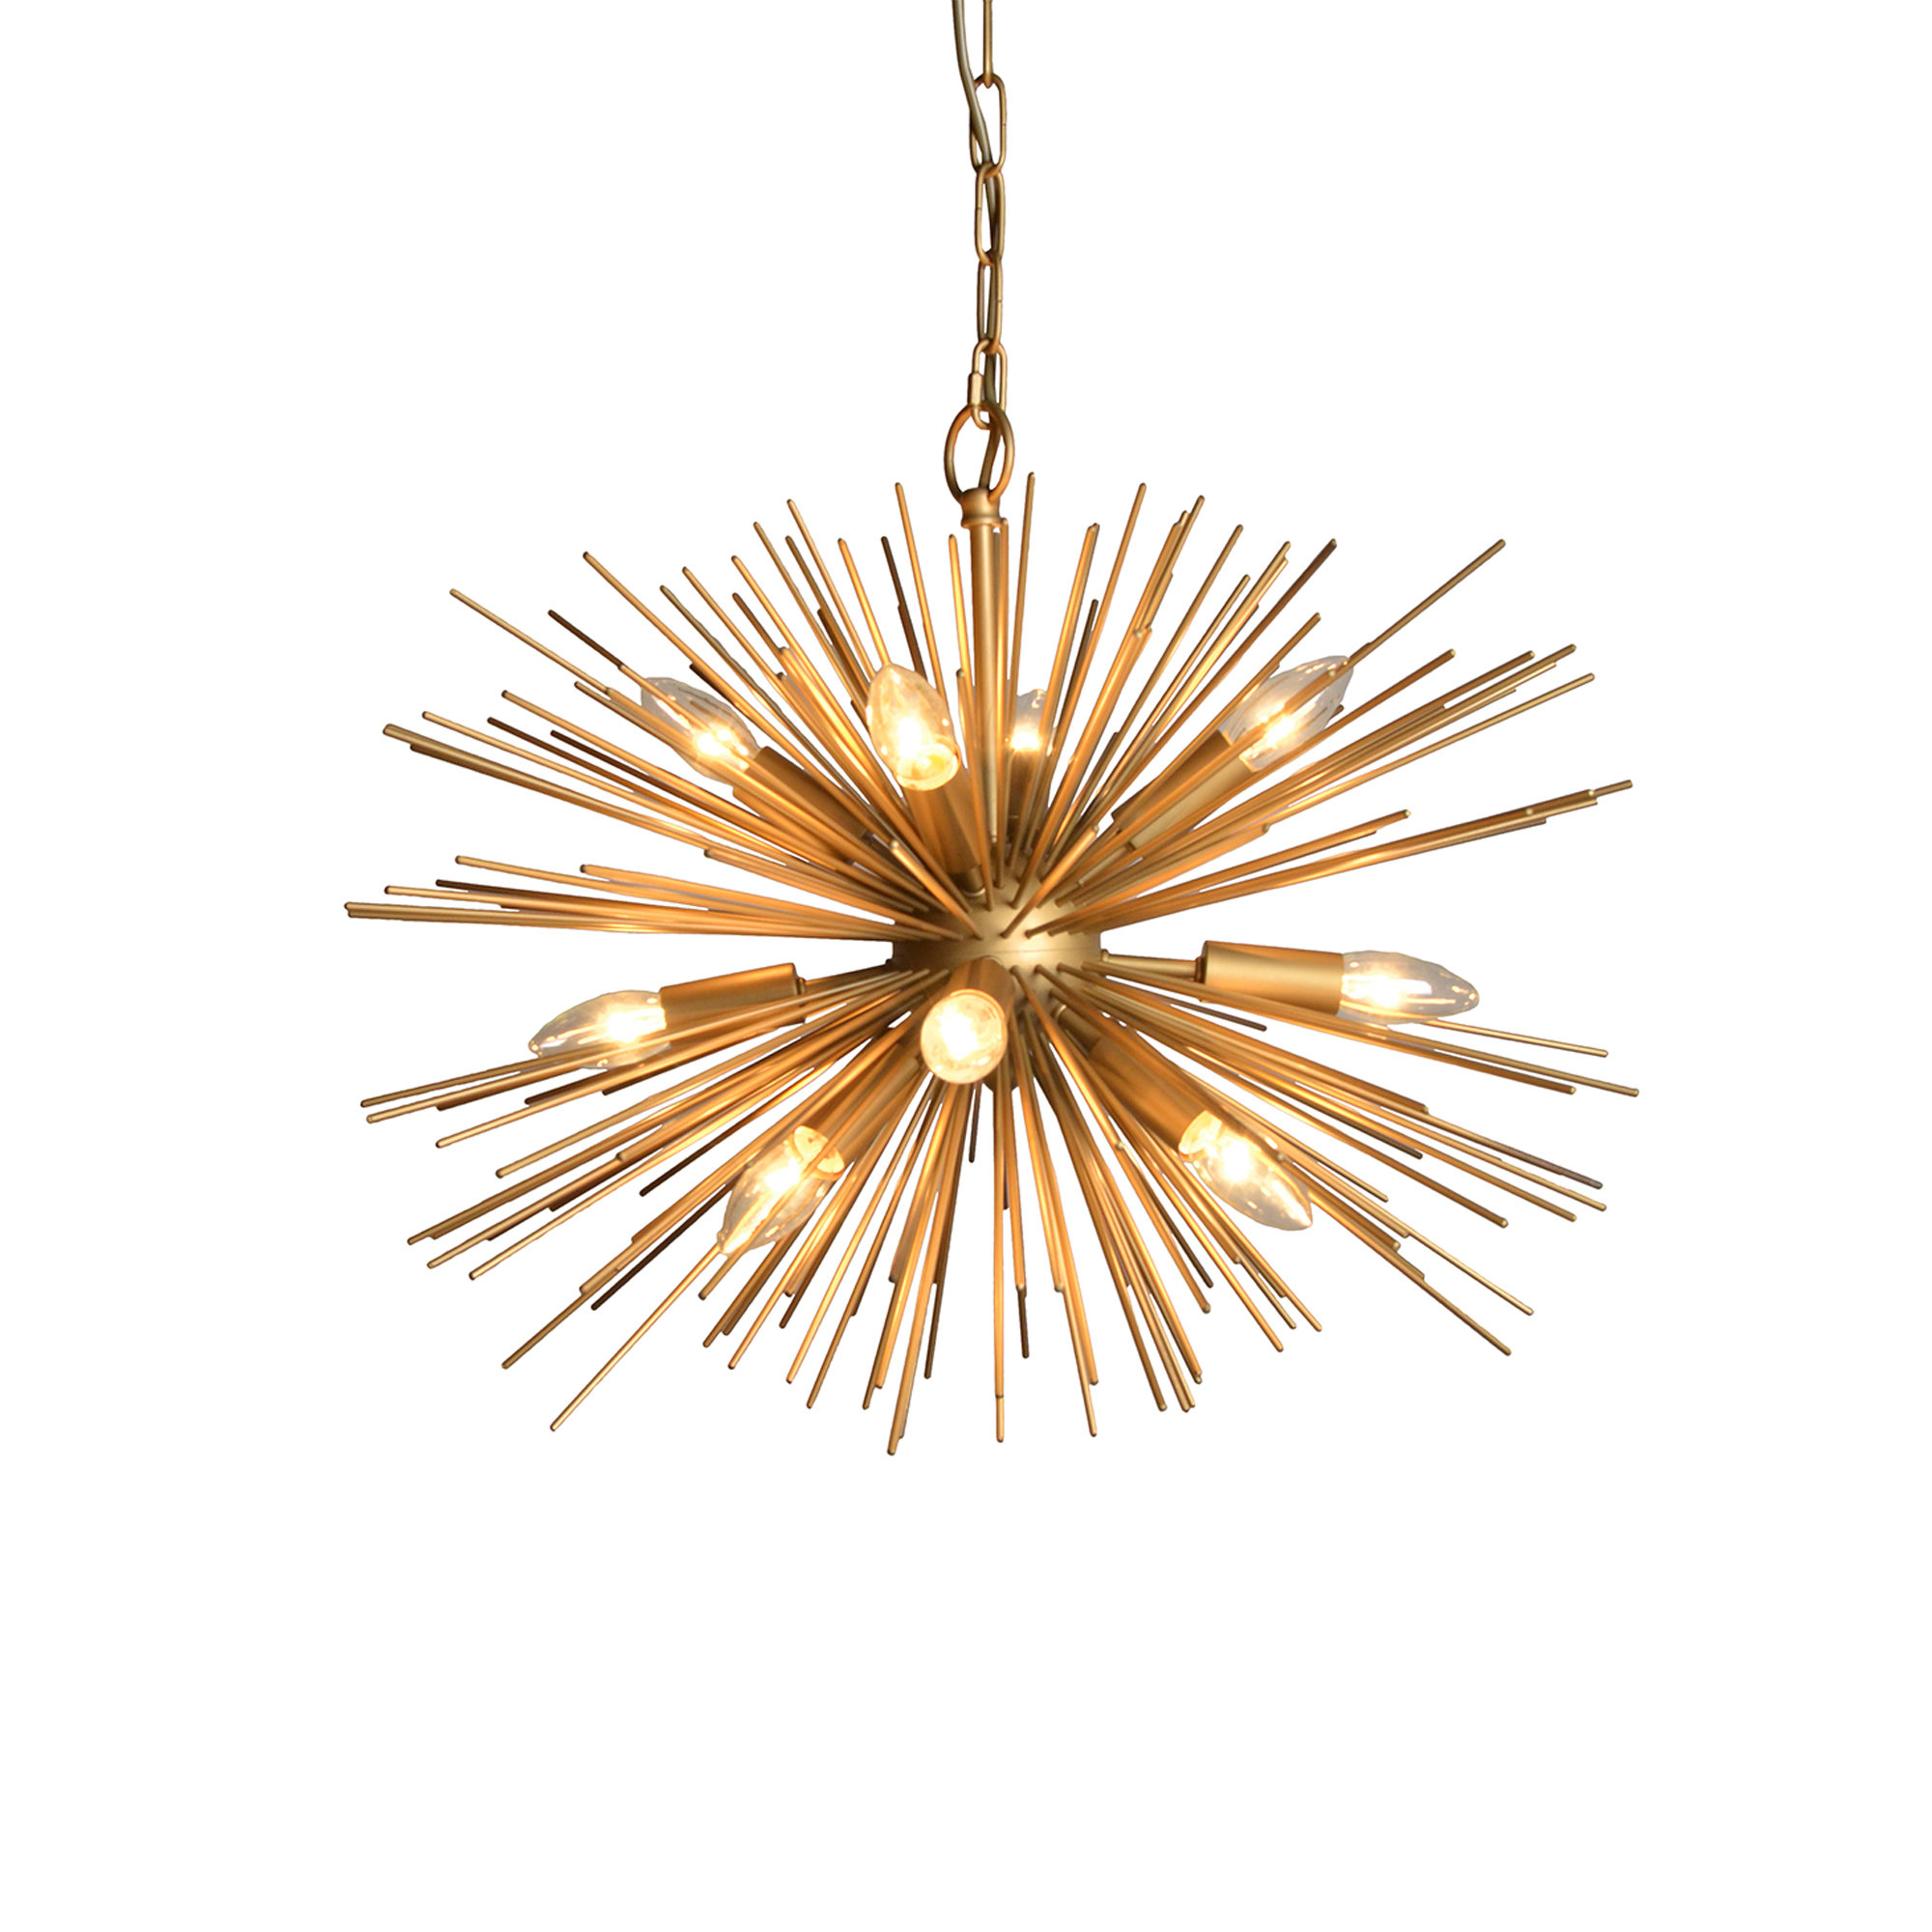 Recent Nelly 12 Light Sputnik Chandeliers For Modern Rustic Interiors Nelly 12 Light Sputnik Chandelier (View 14 of 20)